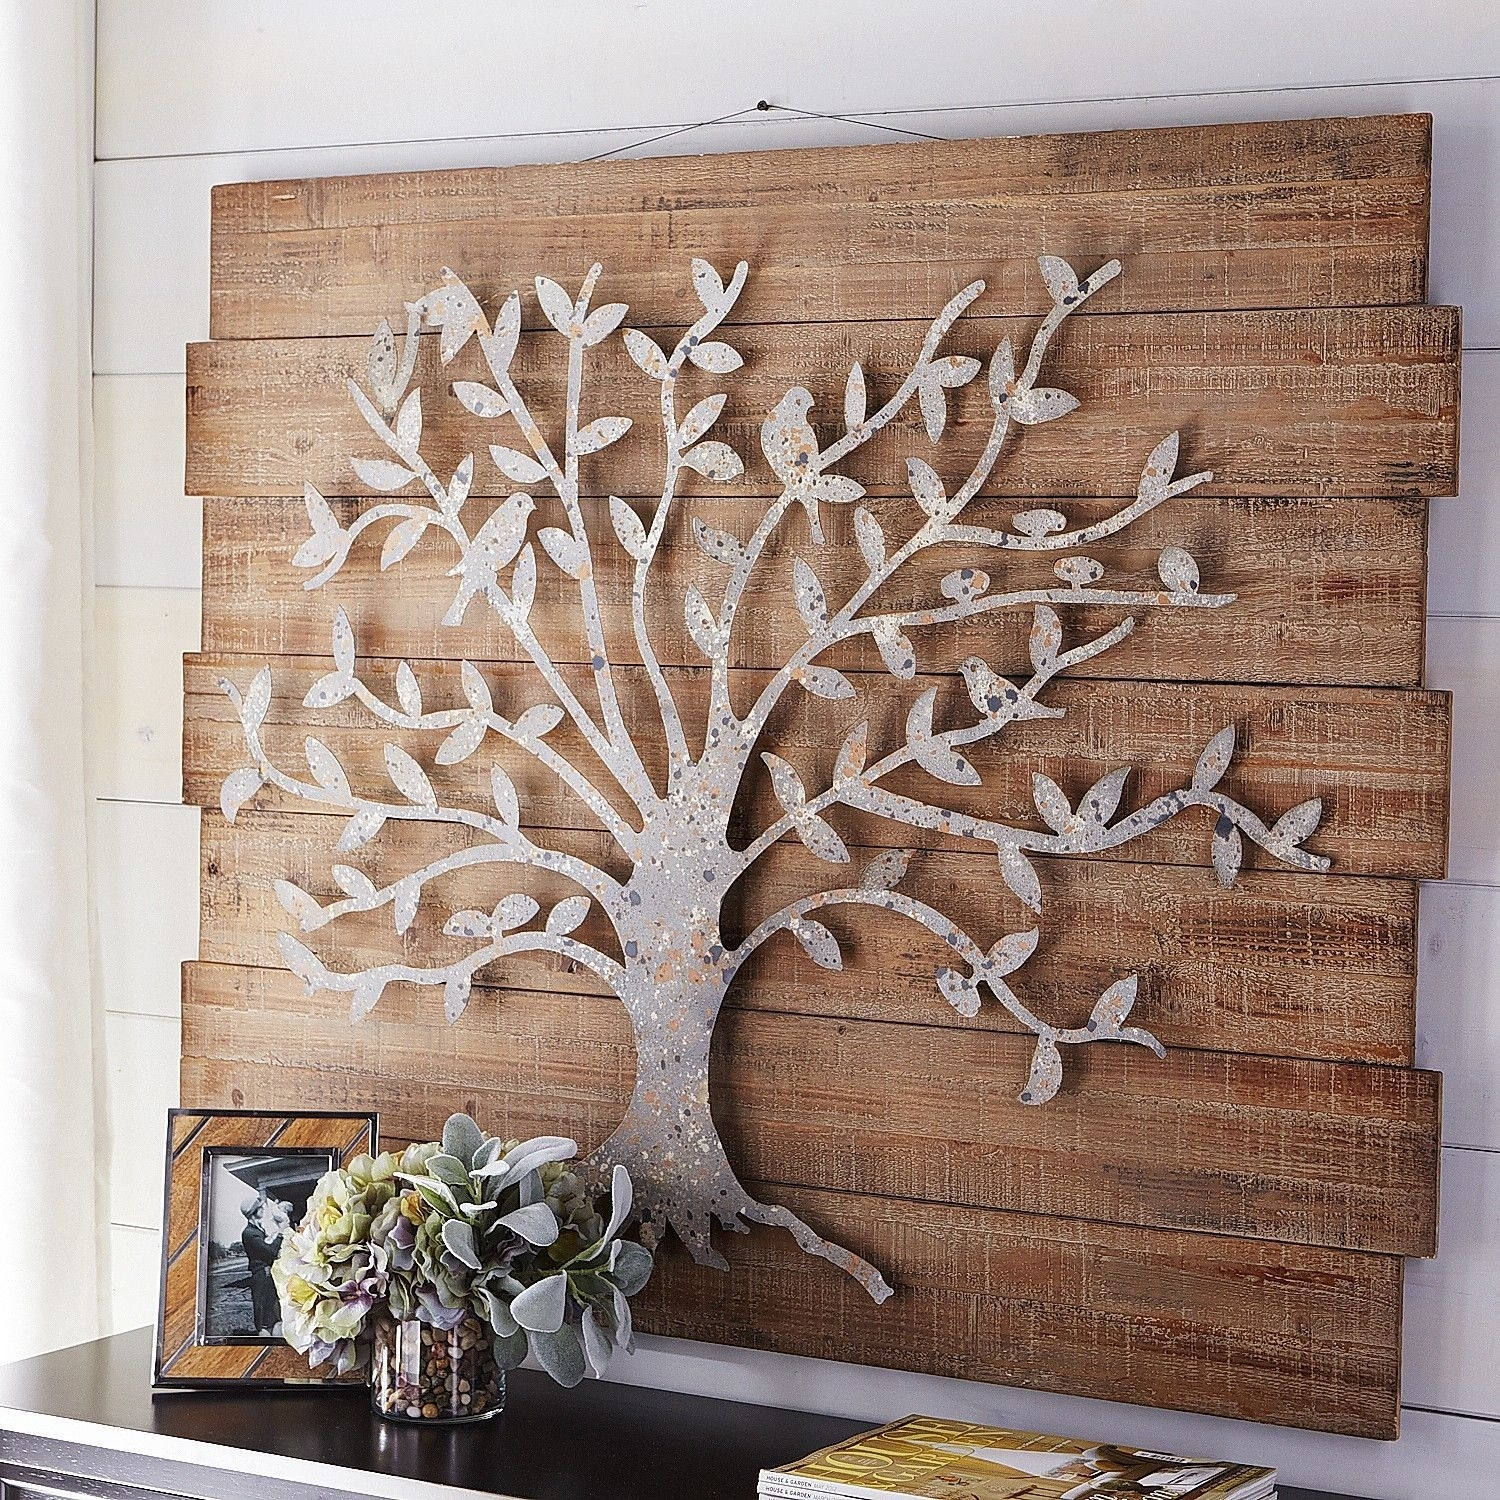 Timeless Tree Wall Decor | Pier 1 Imports … | Metal Work | Pinte… With Regard To Latest Metal Tree Wall Art (View 14 of 15)